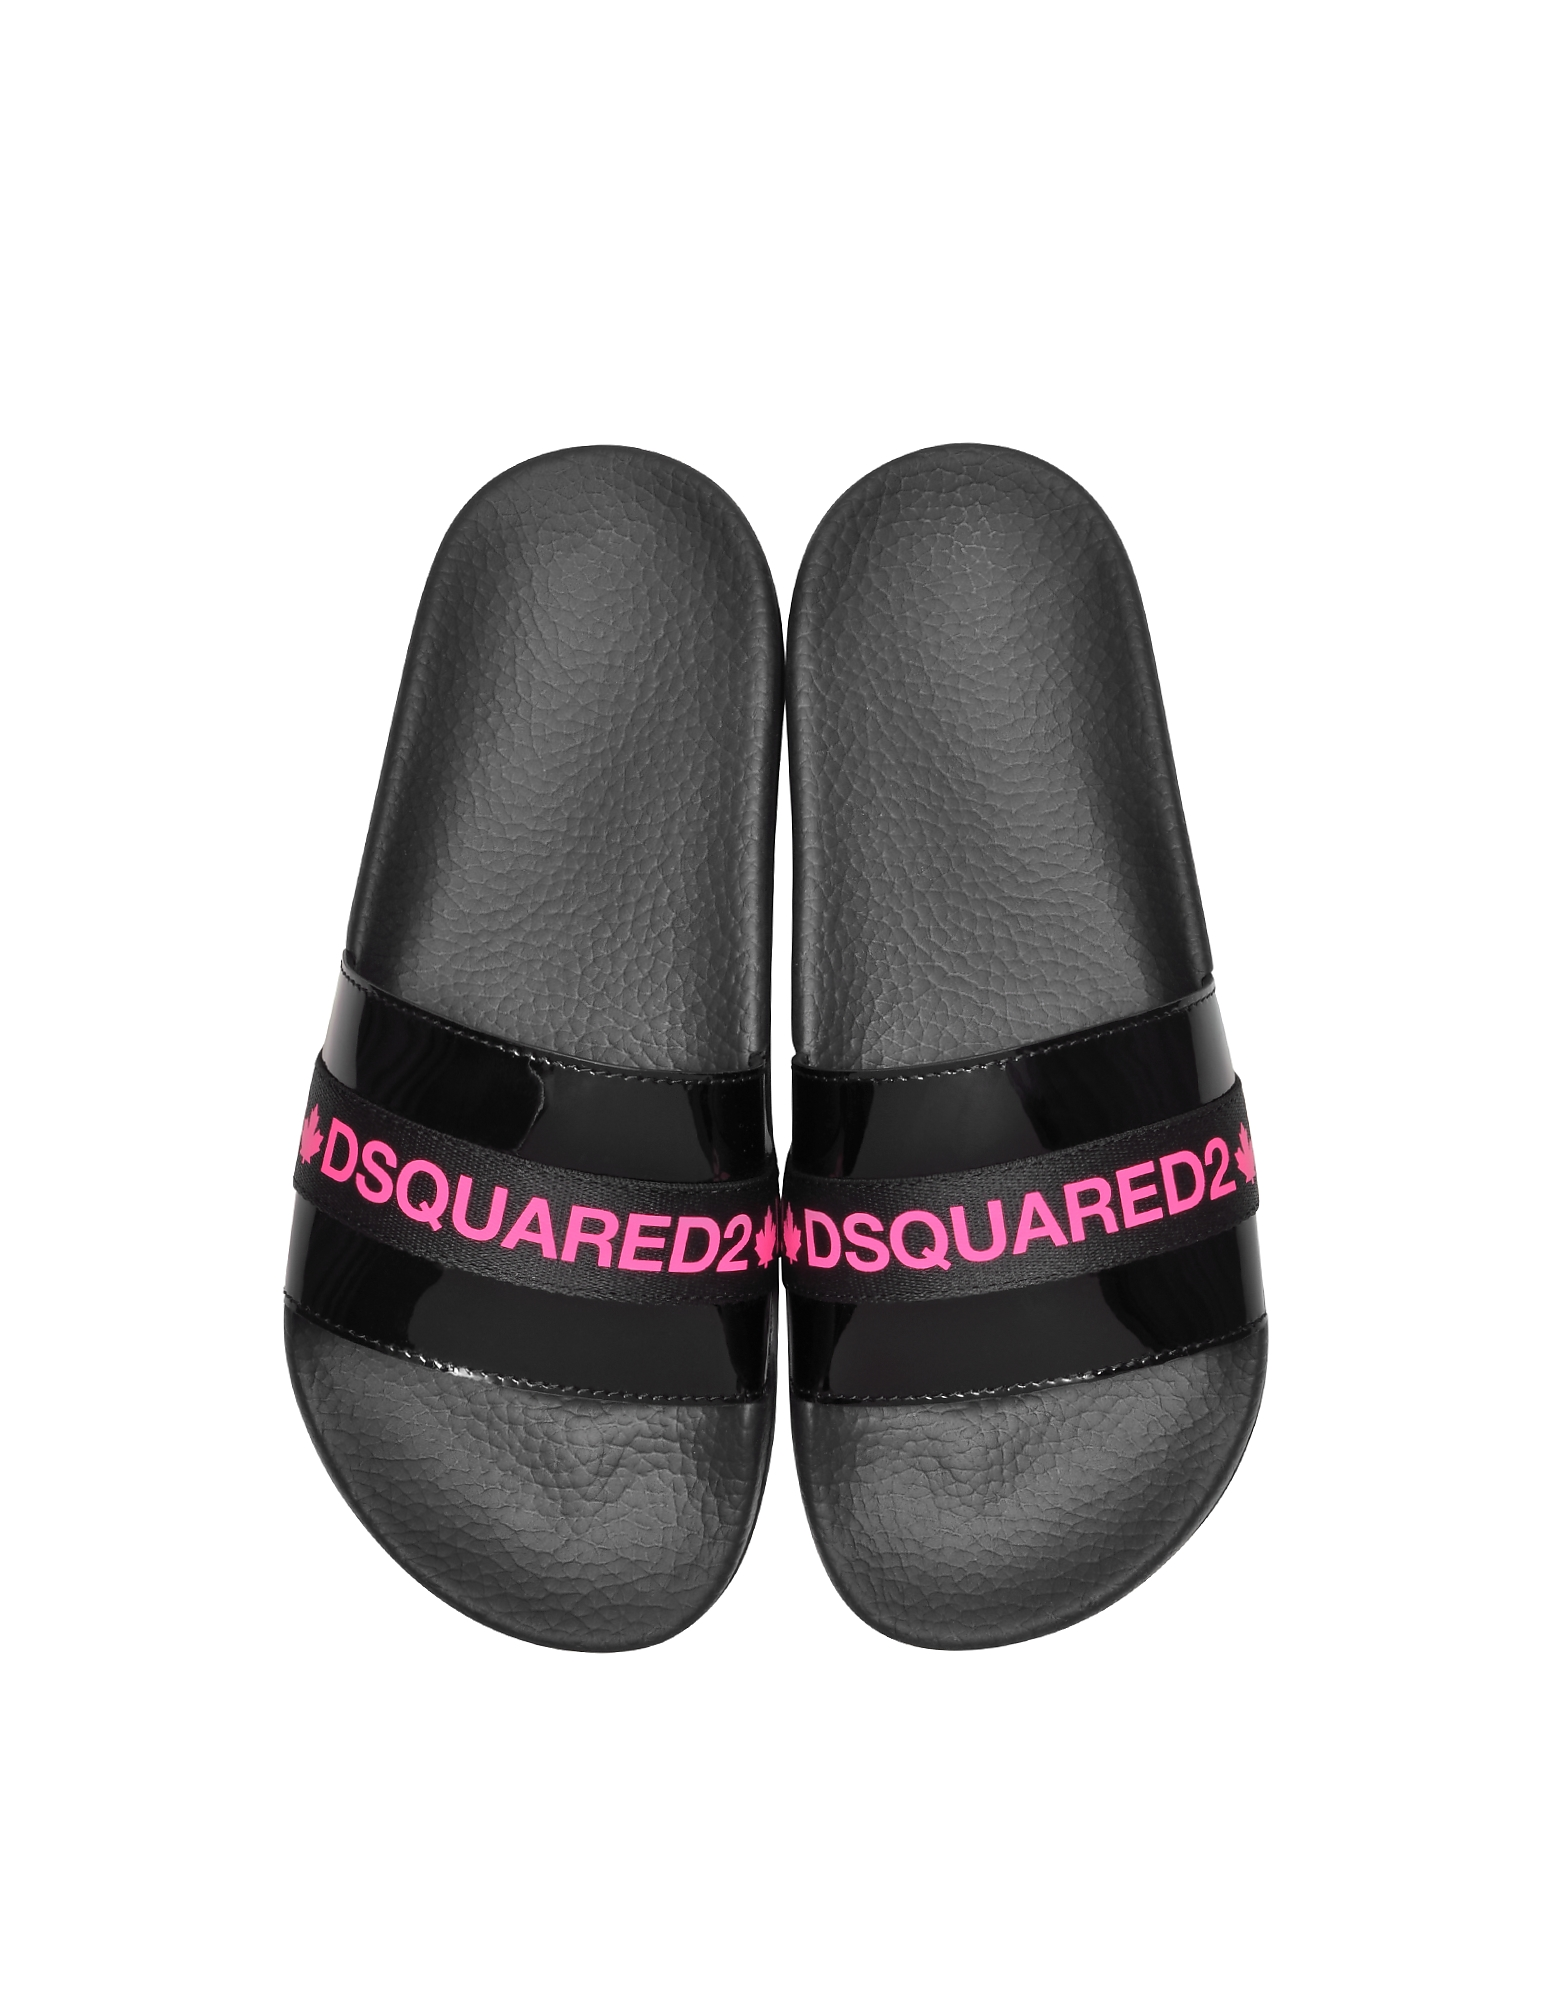 Dsquared2 Slippers BLACK AND NEON PINK TAPE WOMEN'S FLIP FLOP POOL SANDALS